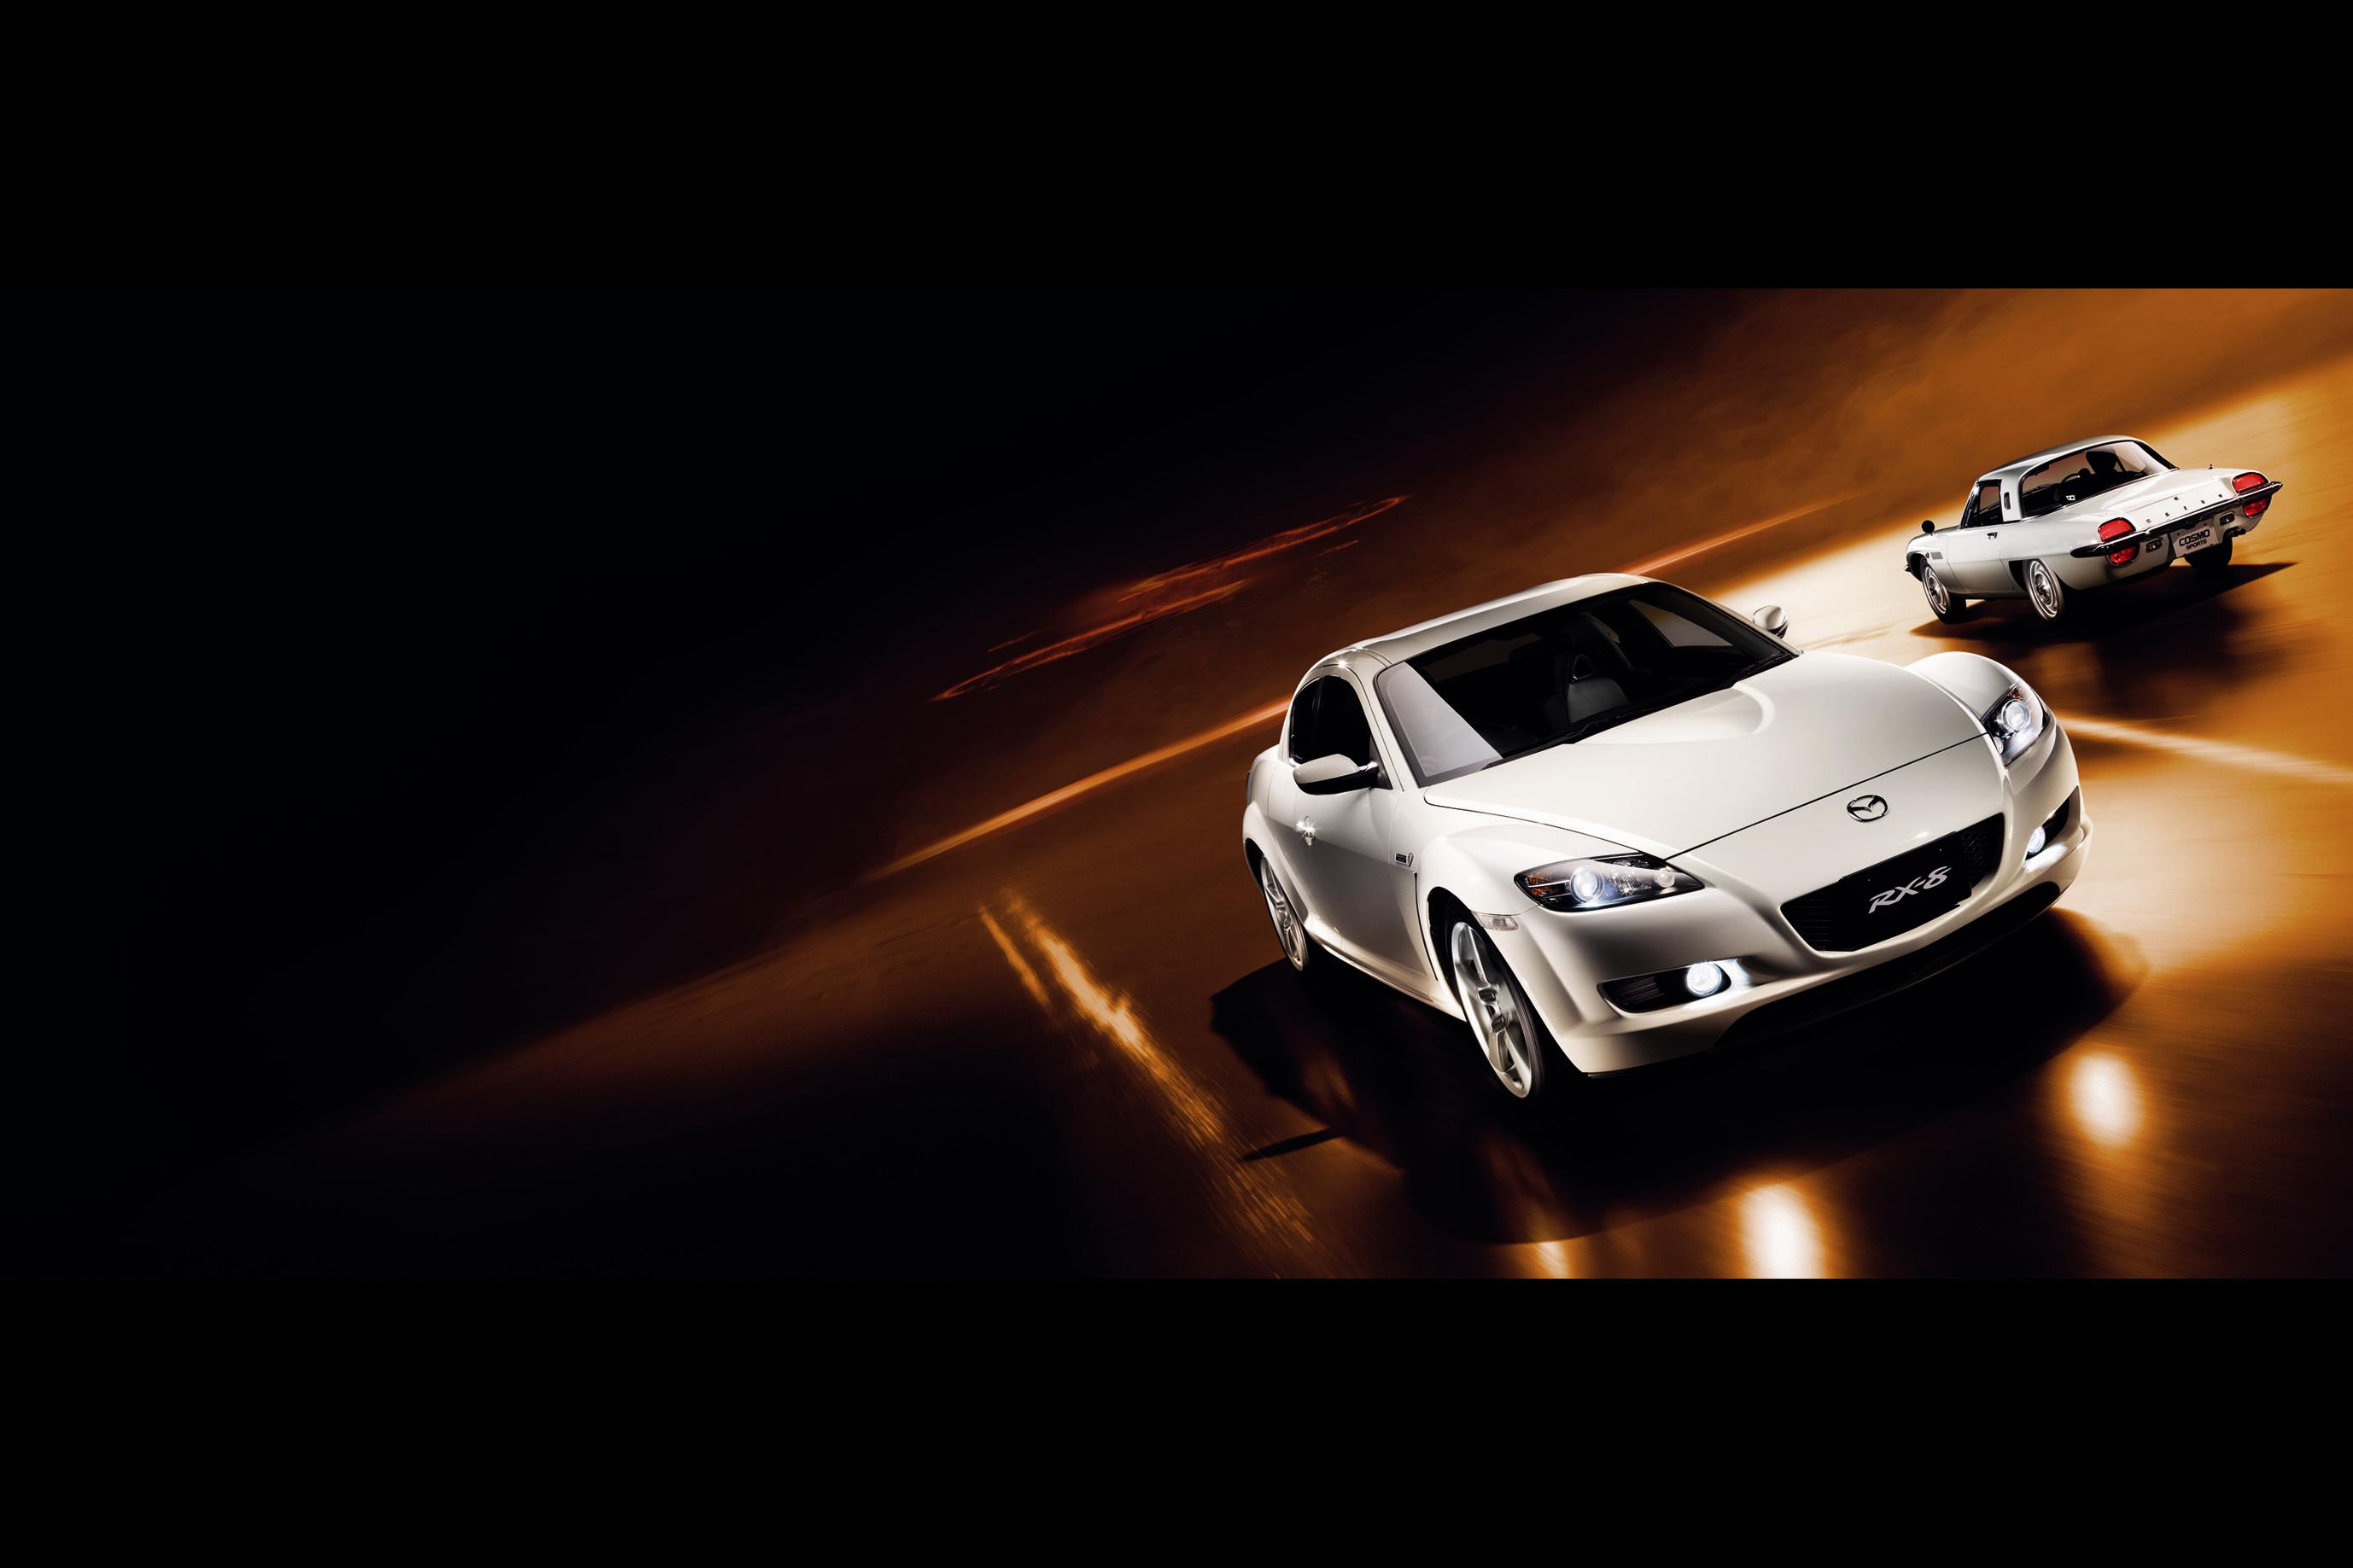 mazda rx8 reviews specs prices photos and videos top speed 2007 mazda rx 8 rotary engine 40th anniversary